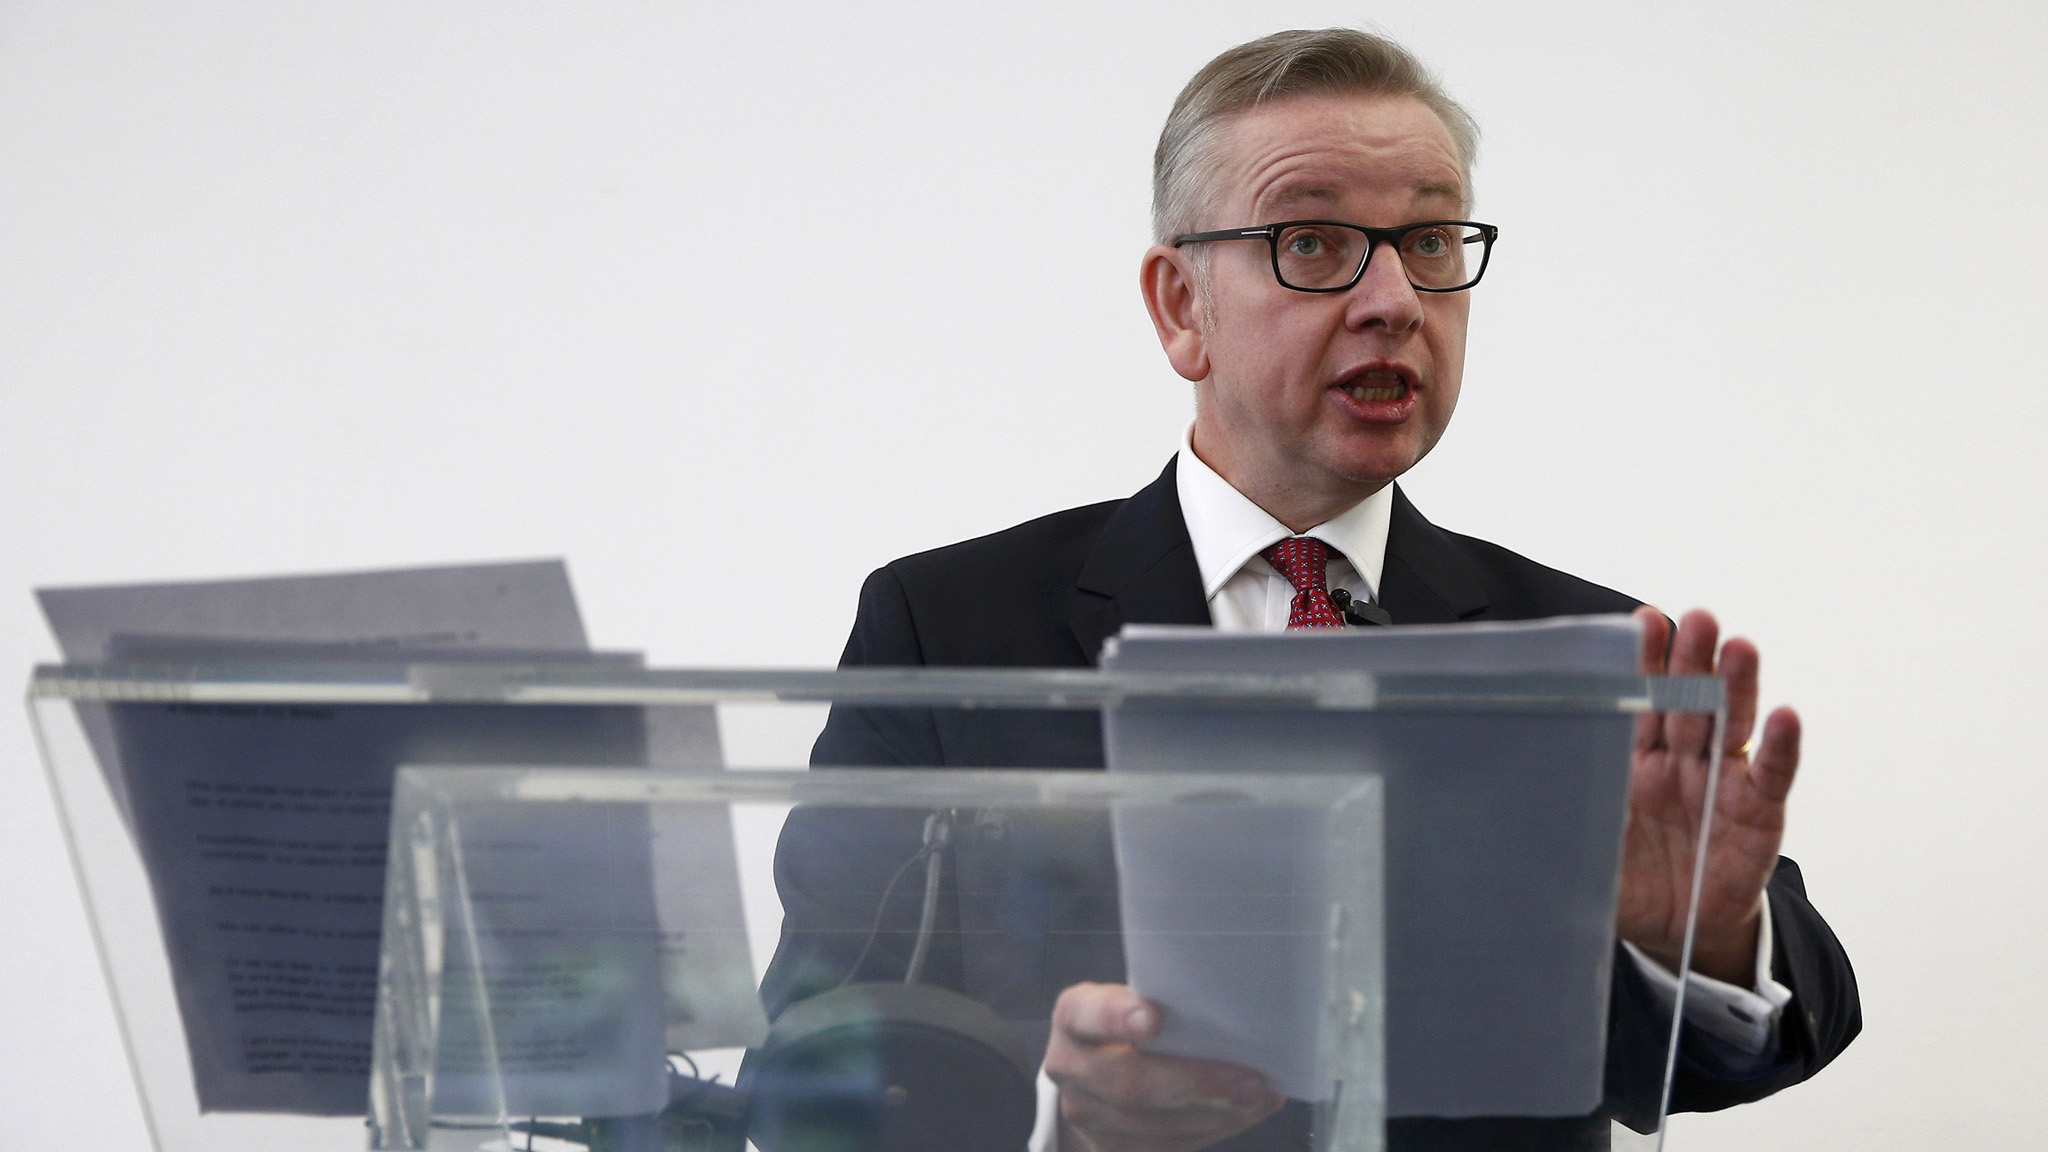 Britain's Justice Secretary, Michael Gove, delivers his speech after announcing his bid to become Conservative Party leader, in London